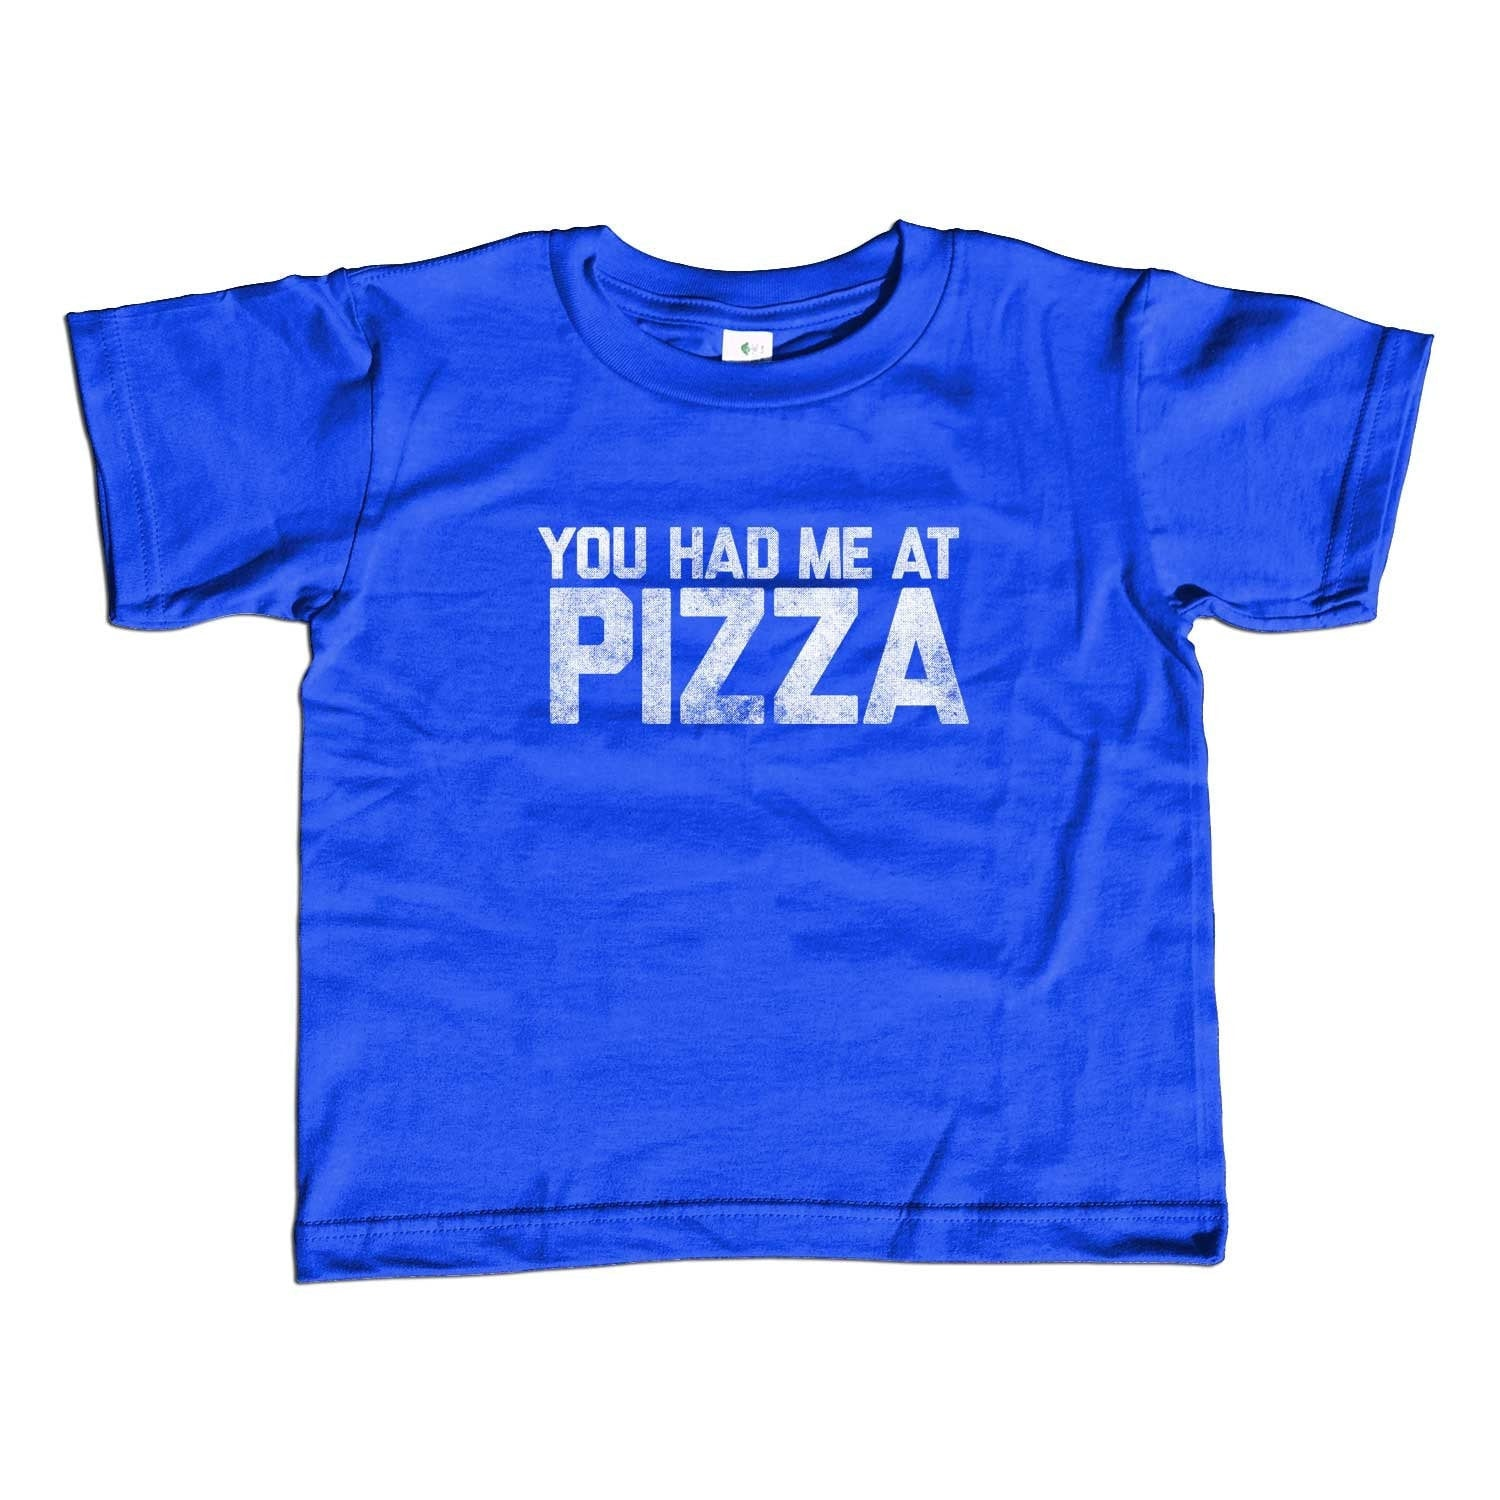 Girl's You Had Me At Pizza T-Shirt - Unisex Fit Hipster Foodie Tshirt